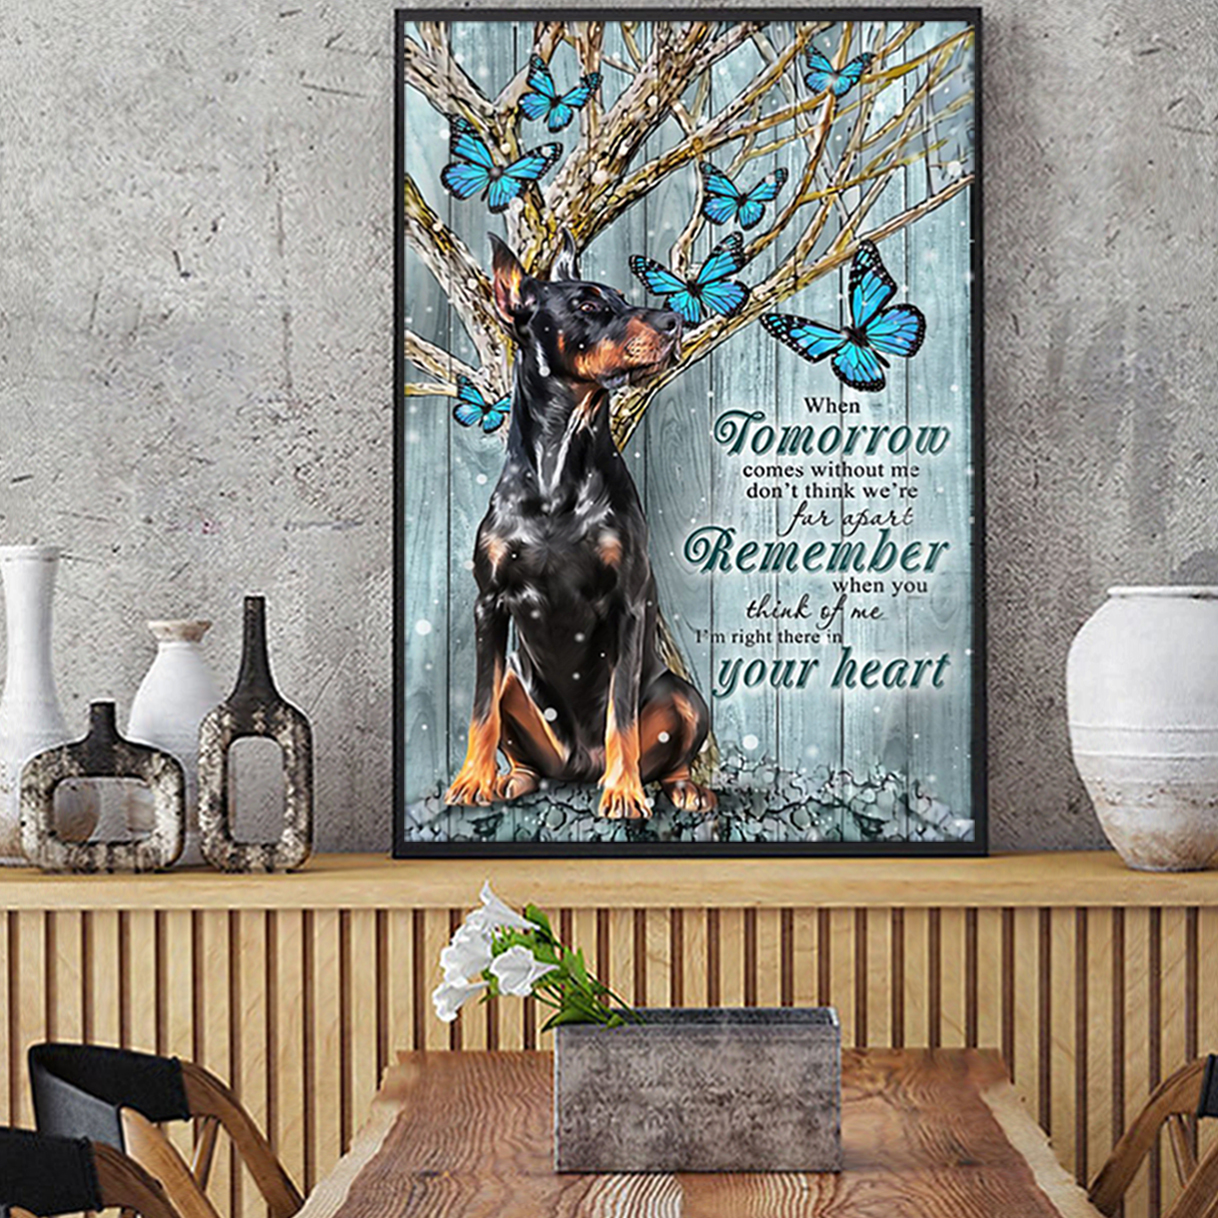 Doberman winter when tomorrow comes without me poster A2